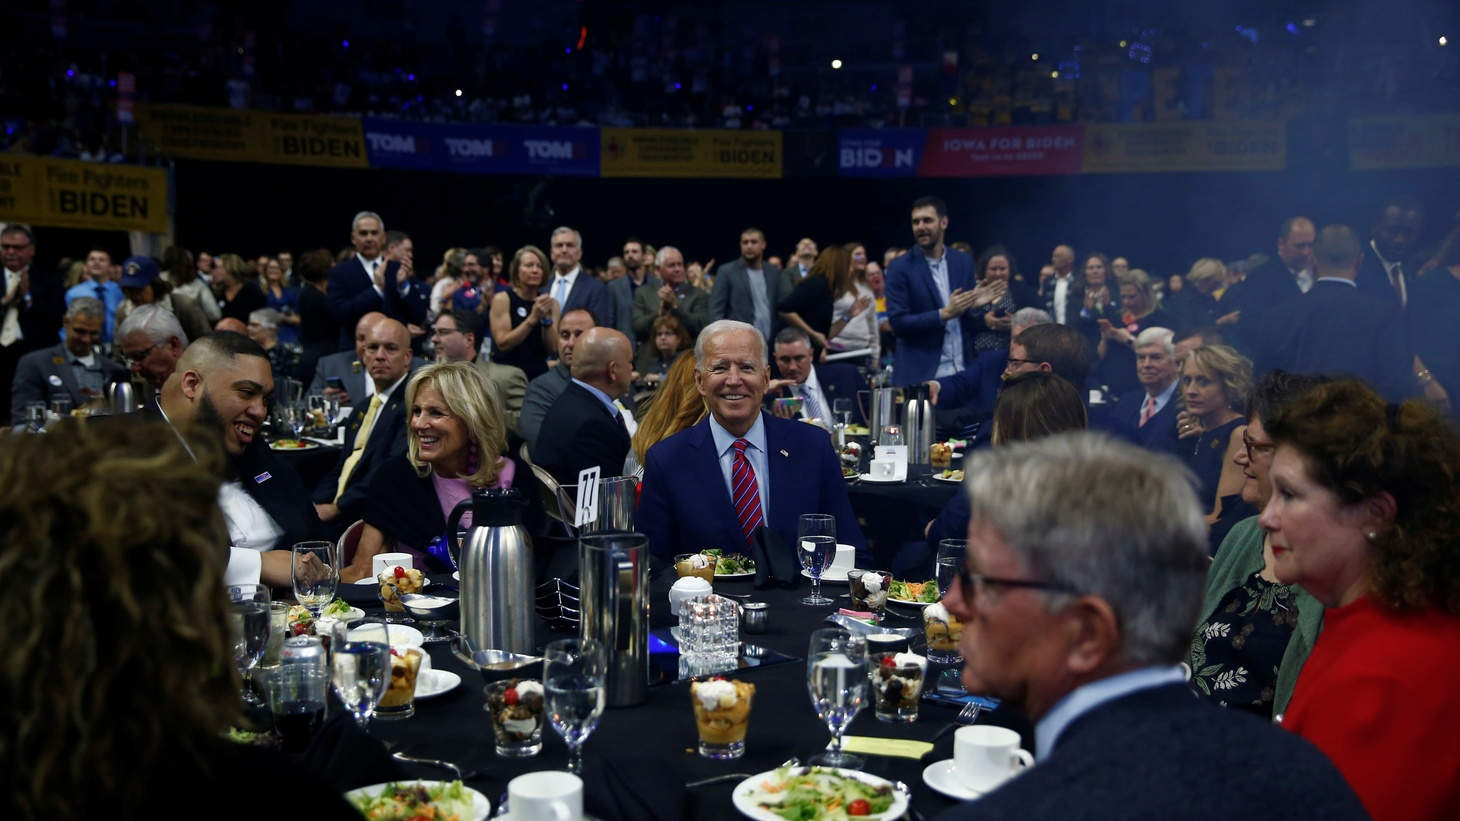 Democratic 2020 U.S. presidential candidate former Vice President Joe Biden sits at a table at a Democratic Party fundraising dinner, the Liberty and Justice Celebration, in Des Moines, Iowa, U.S. November 1, 2019.